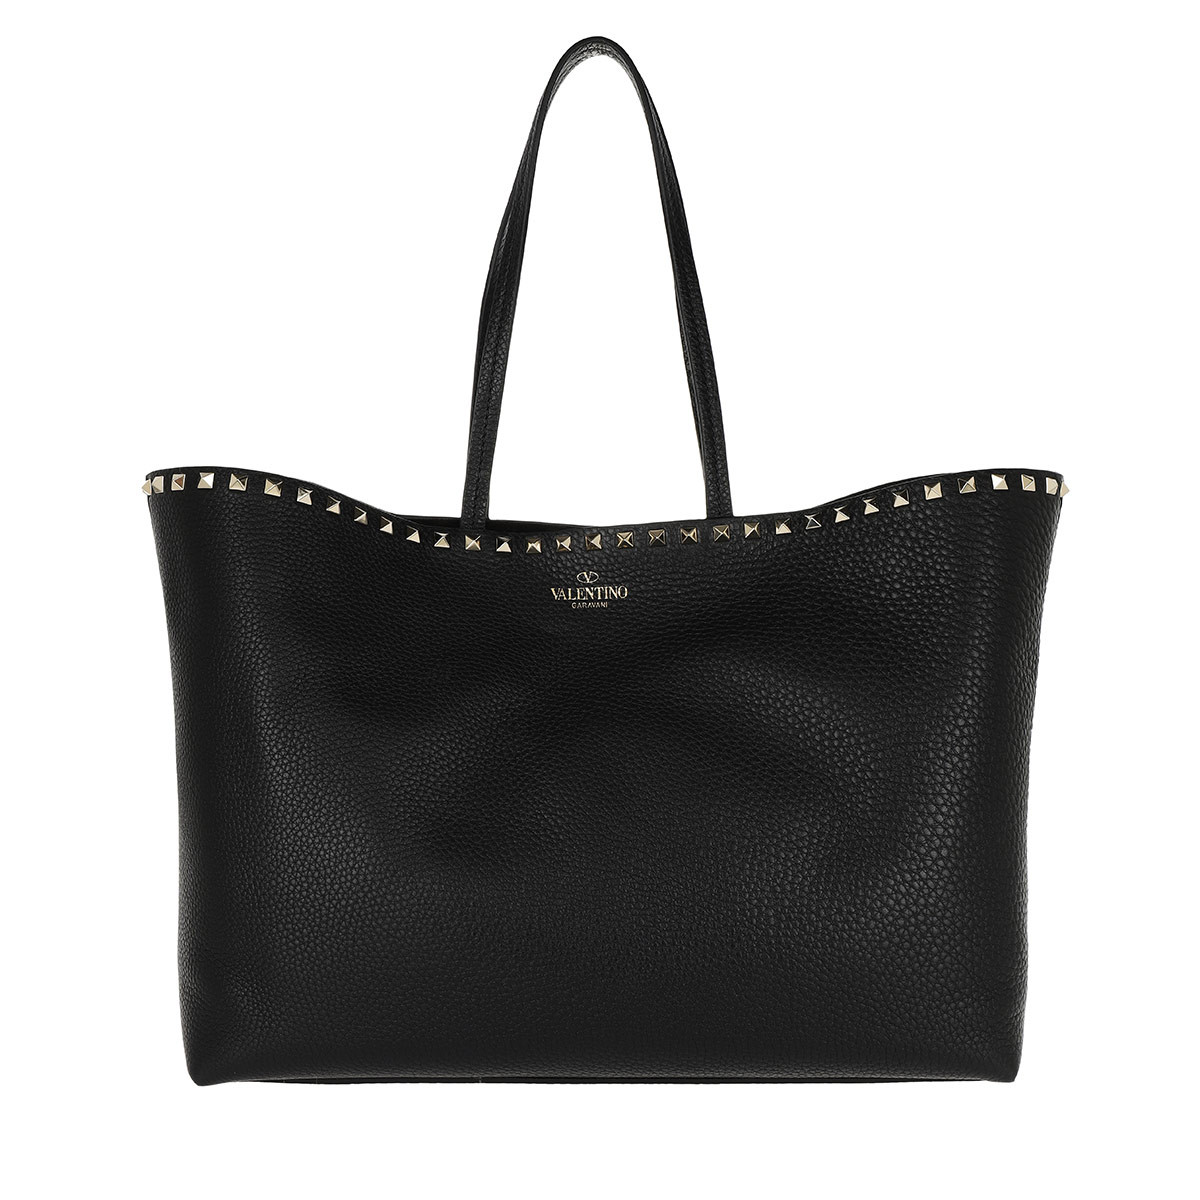 Valentino Shopper - Rockstud Studded Shopping Bag Leather Black - in schwarz - für Damen